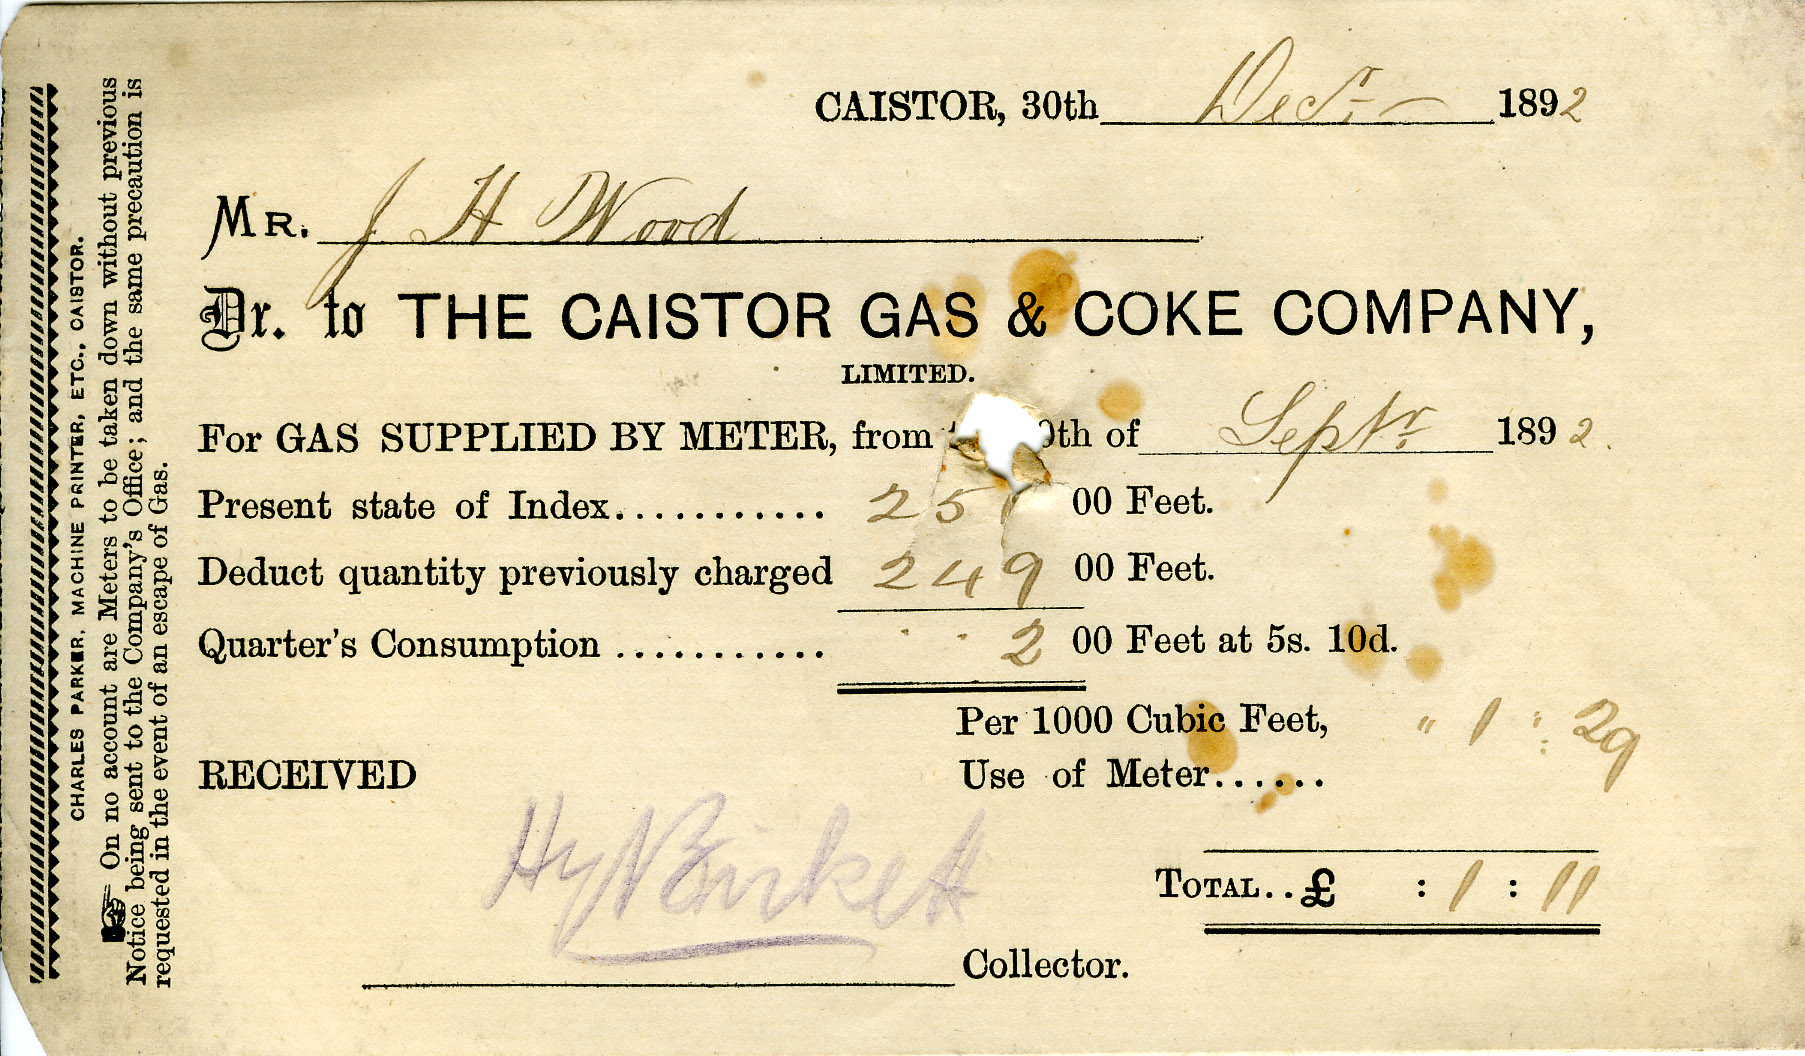 1892 Sept Gas Supplied by Meter.jpg